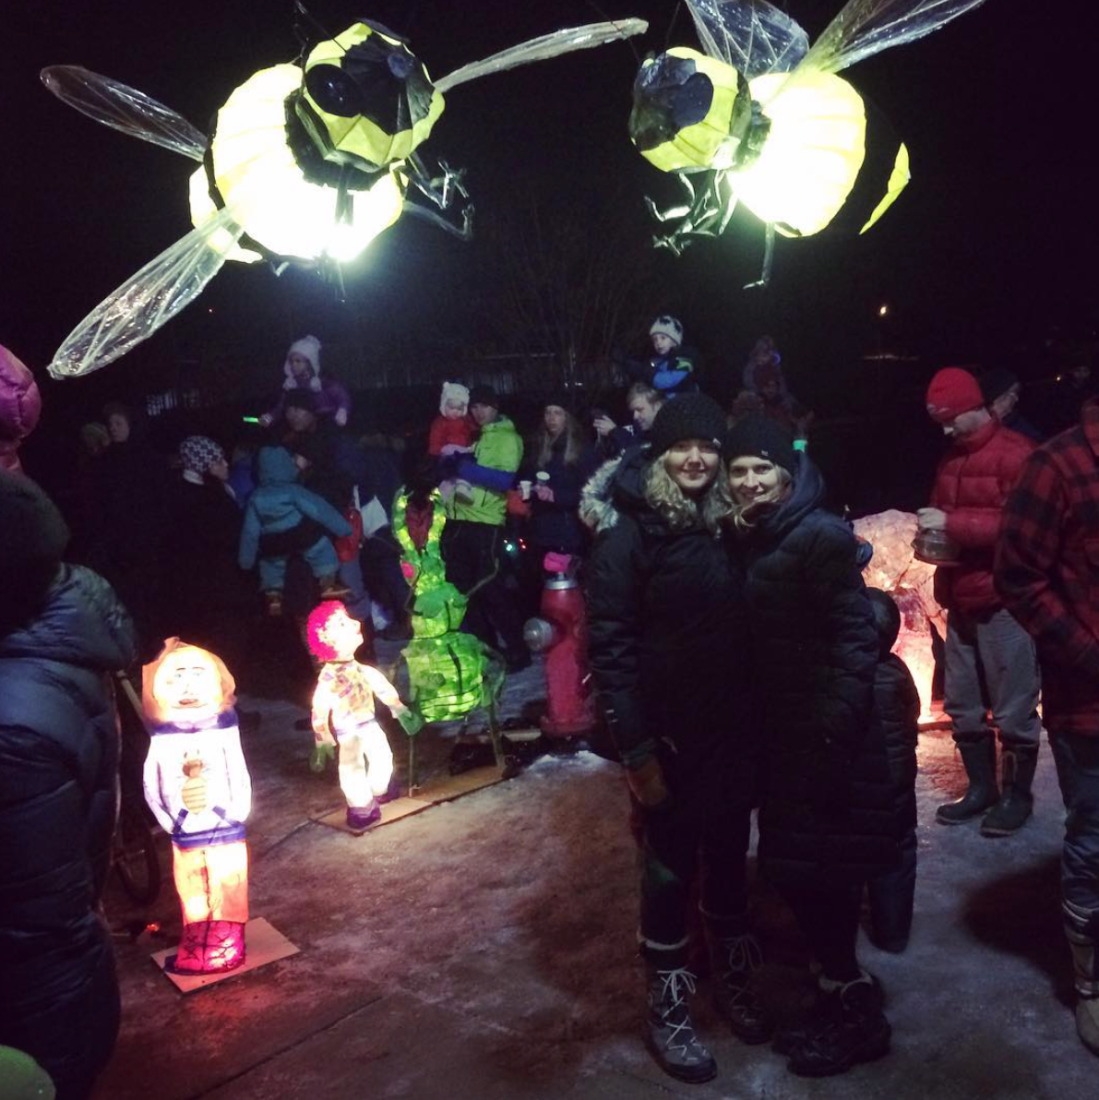 Annex Suspended' Michelle and Brina's art installation at Fernie's Festival of Lights or Lantern Festival 2018